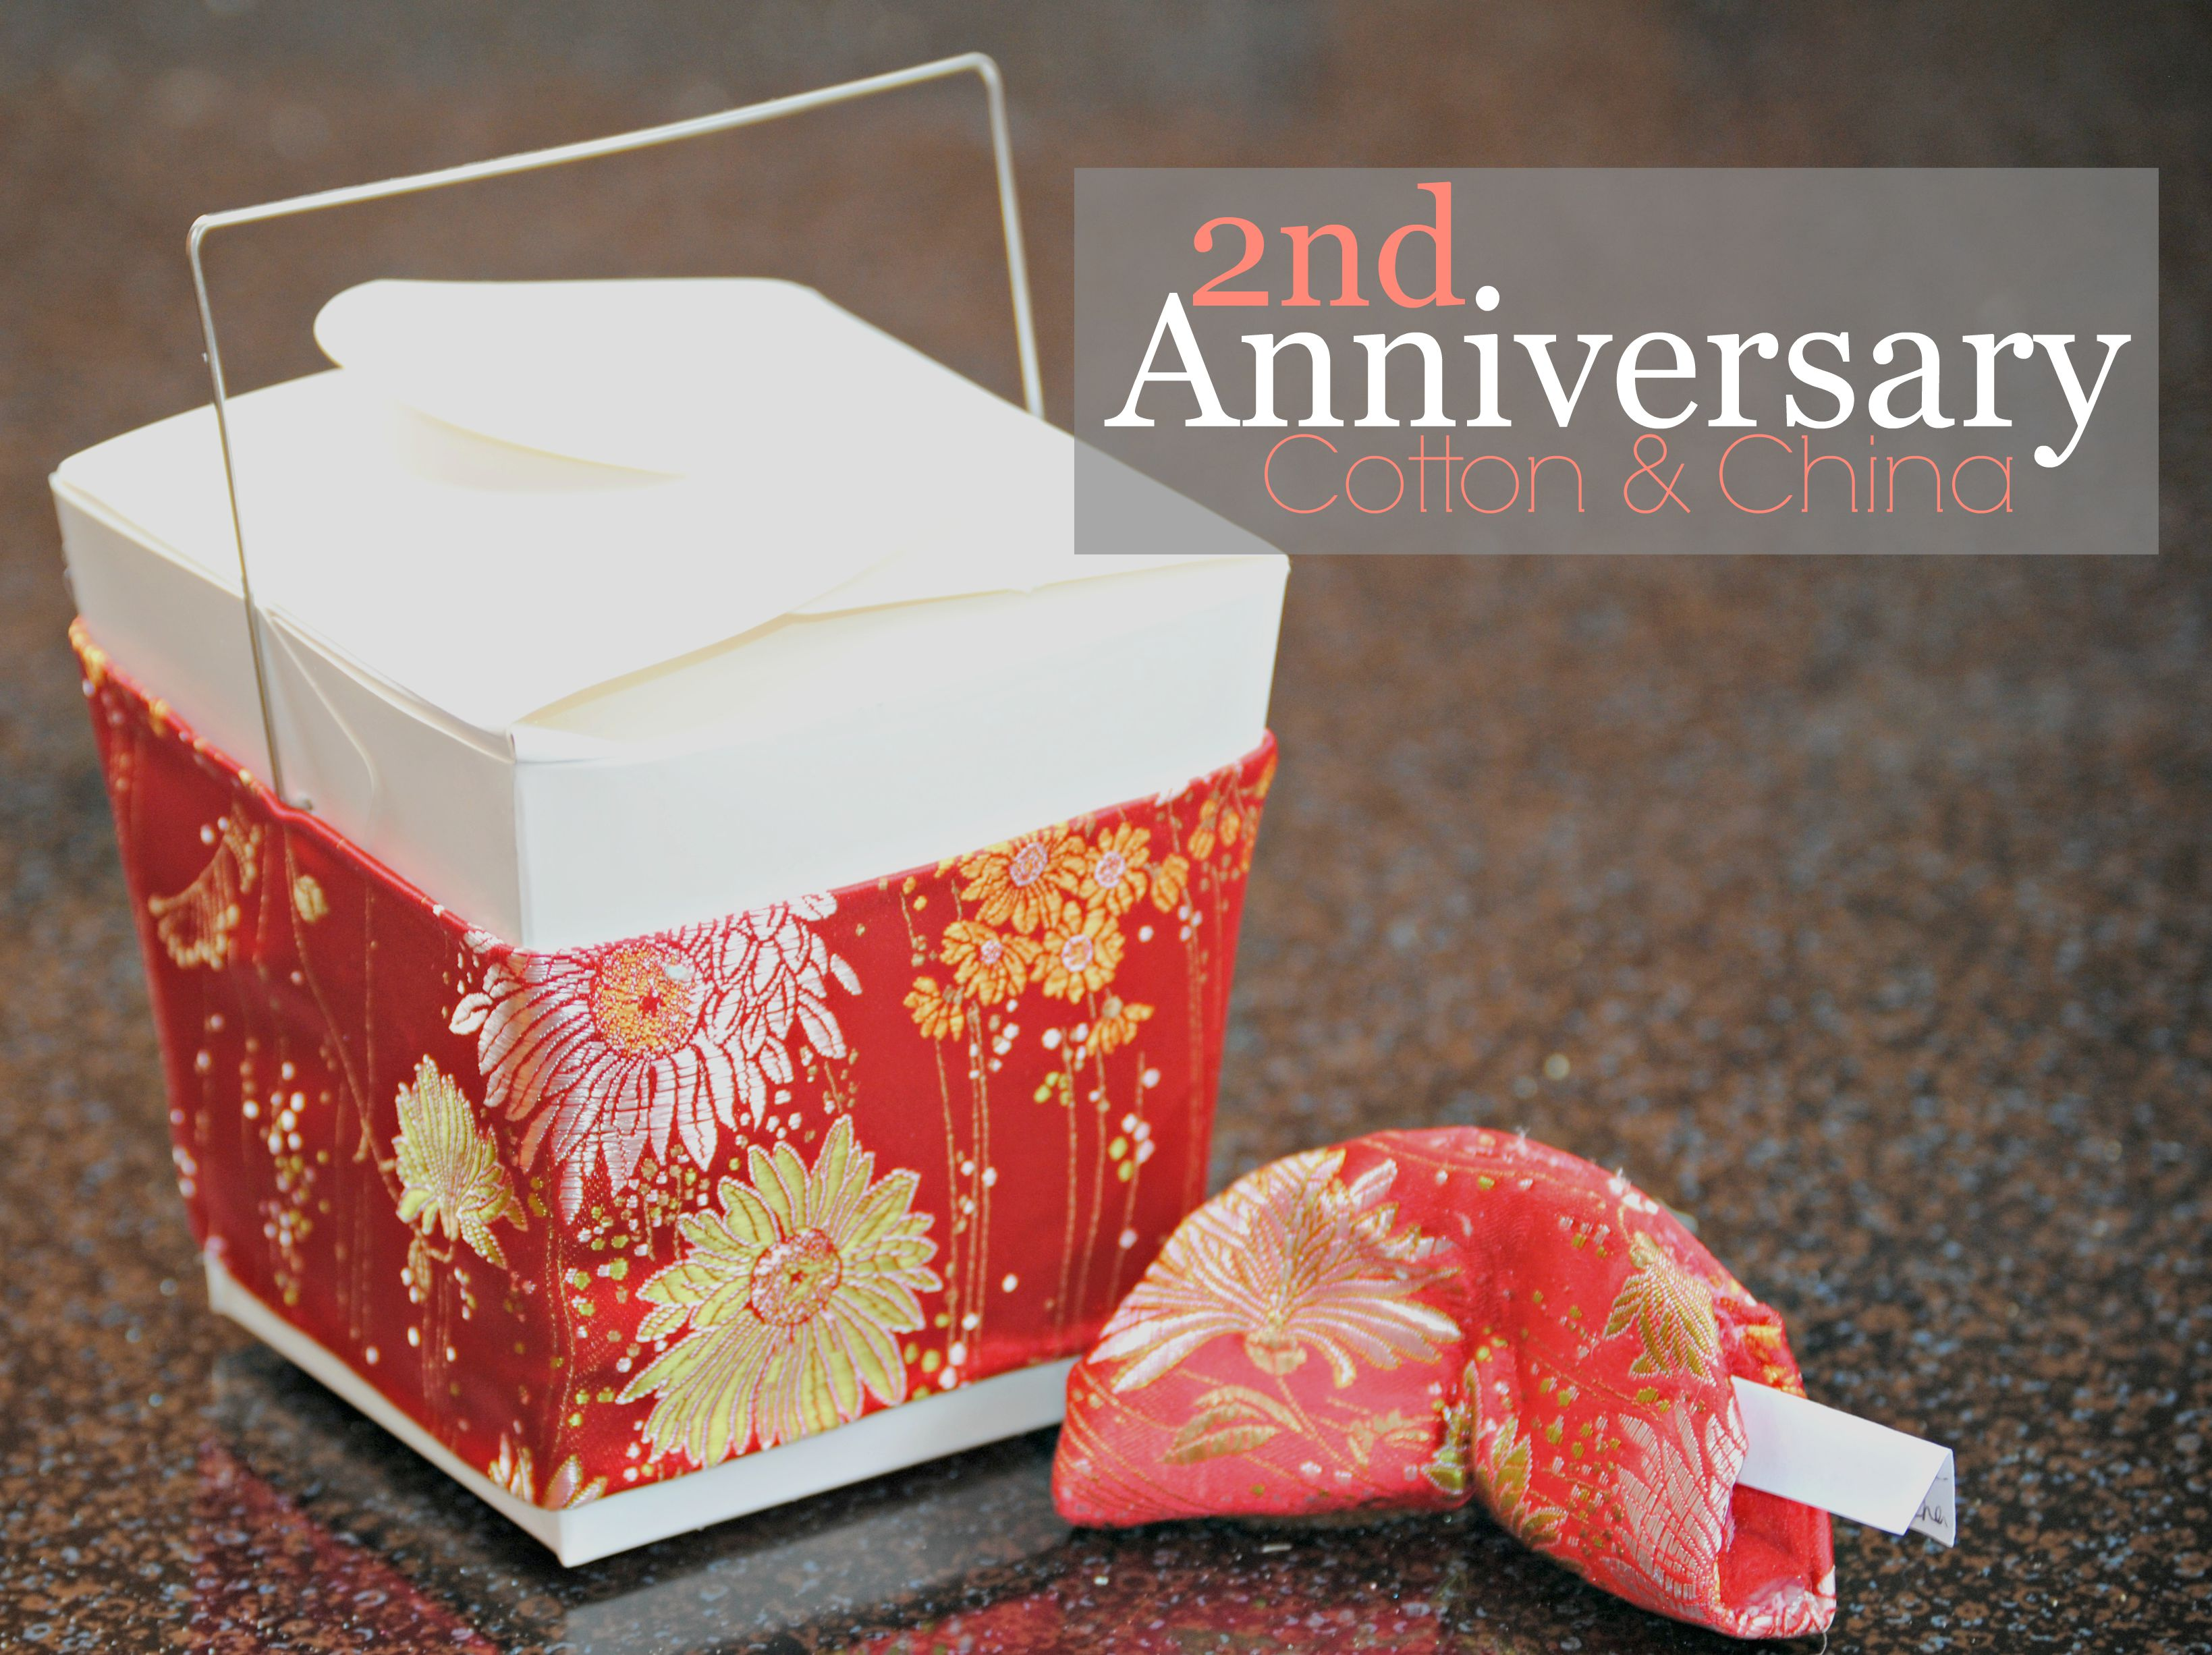 6th Wedding Anniversary Sugar Gifts: And We Are Officially Two! Two Year Anniversary Gift Idea